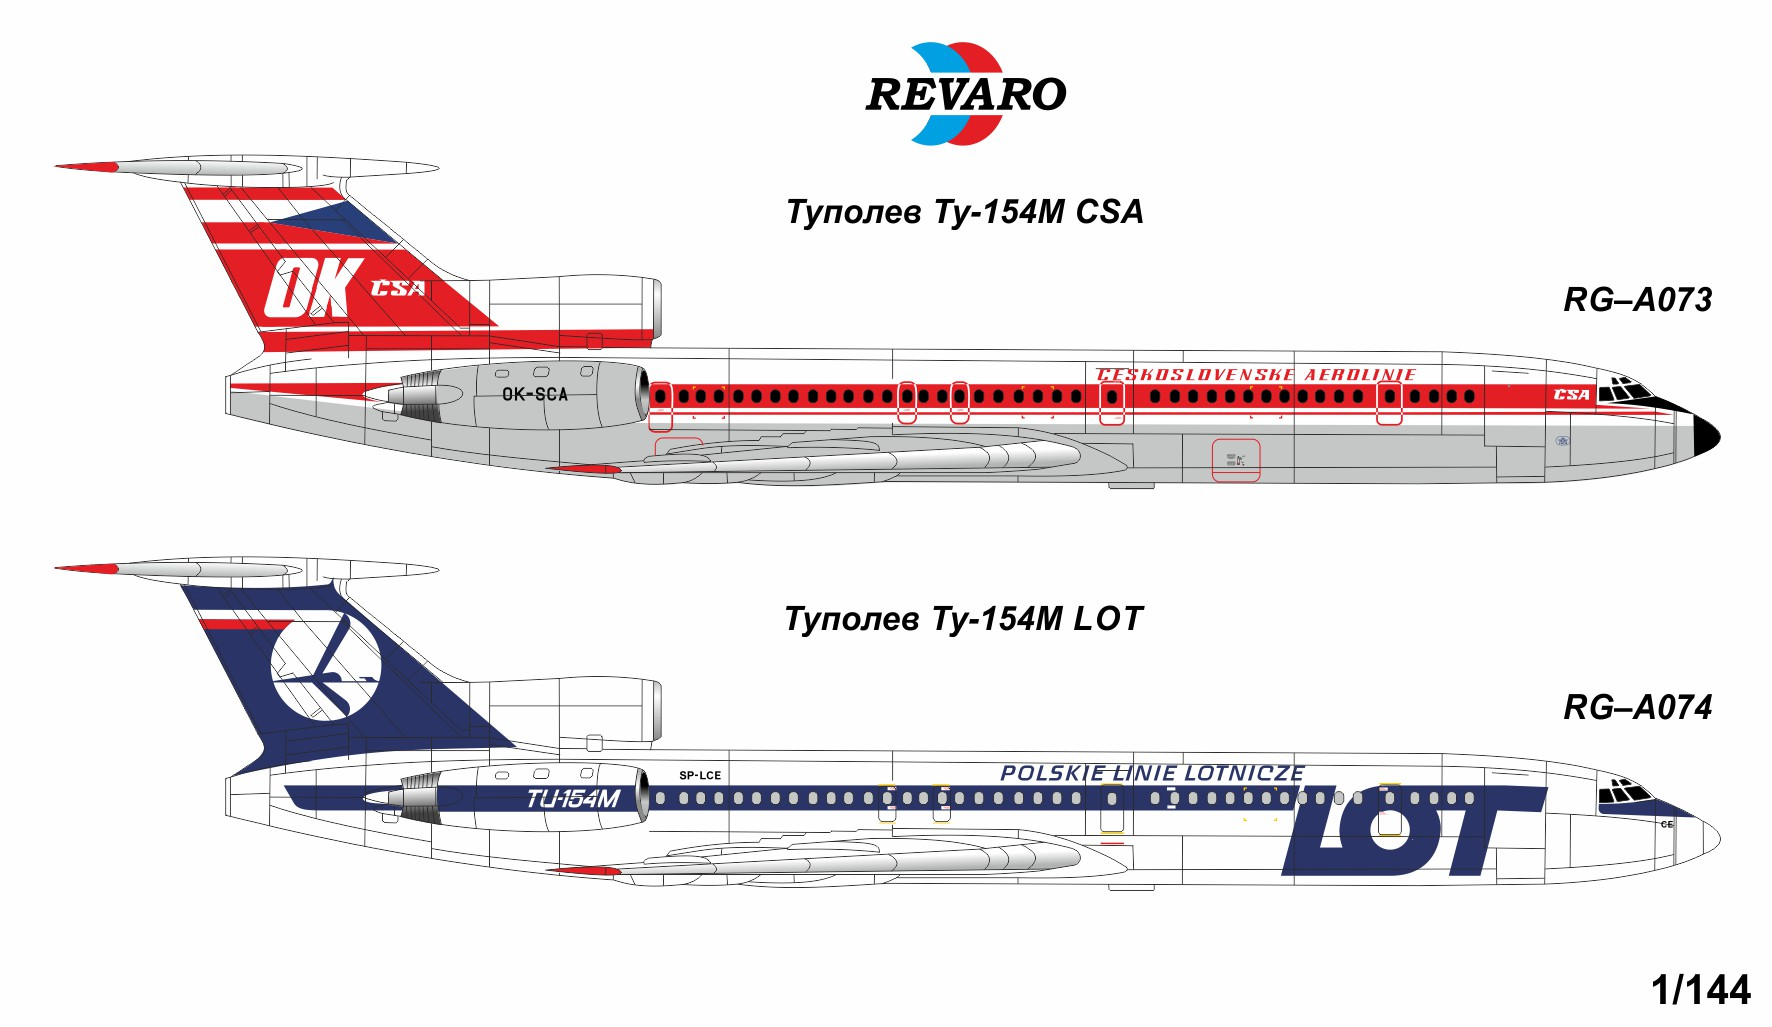 декали decals 1/144 revaro Tu Ту-154м звезда zvezda